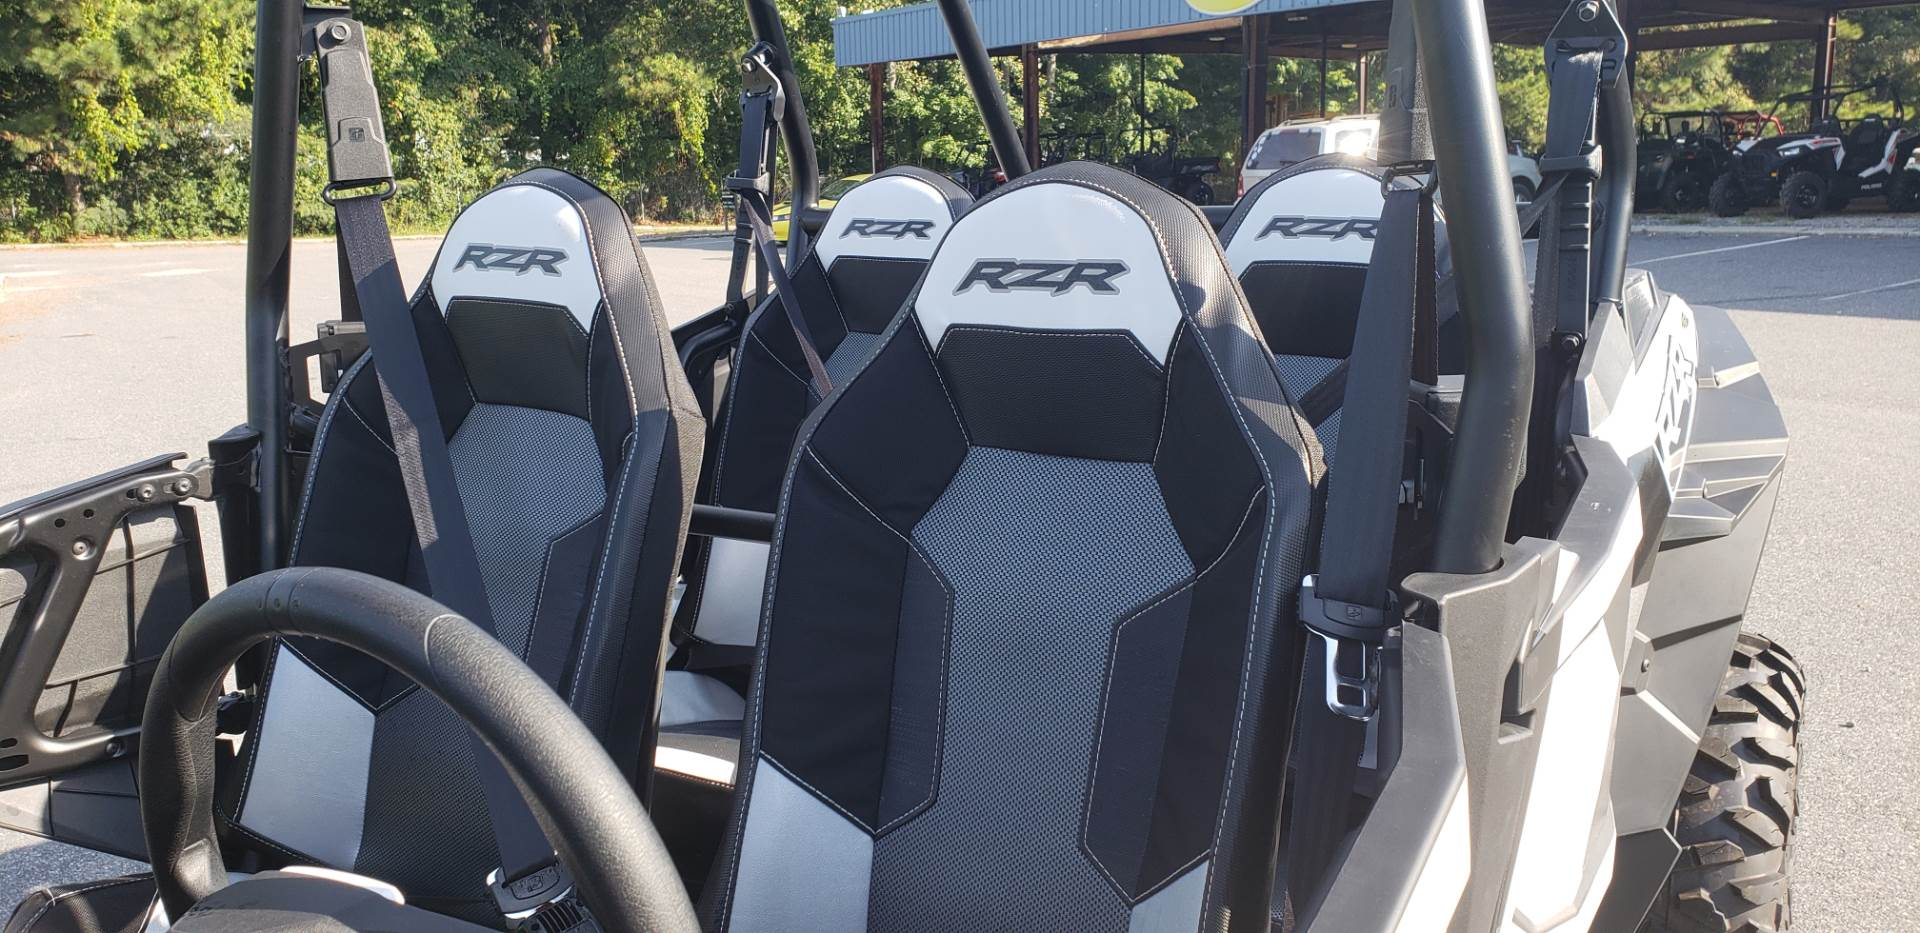 2019 Polaris RZR XP 4 1000 EPS in Hayes, Virginia - Photo 11